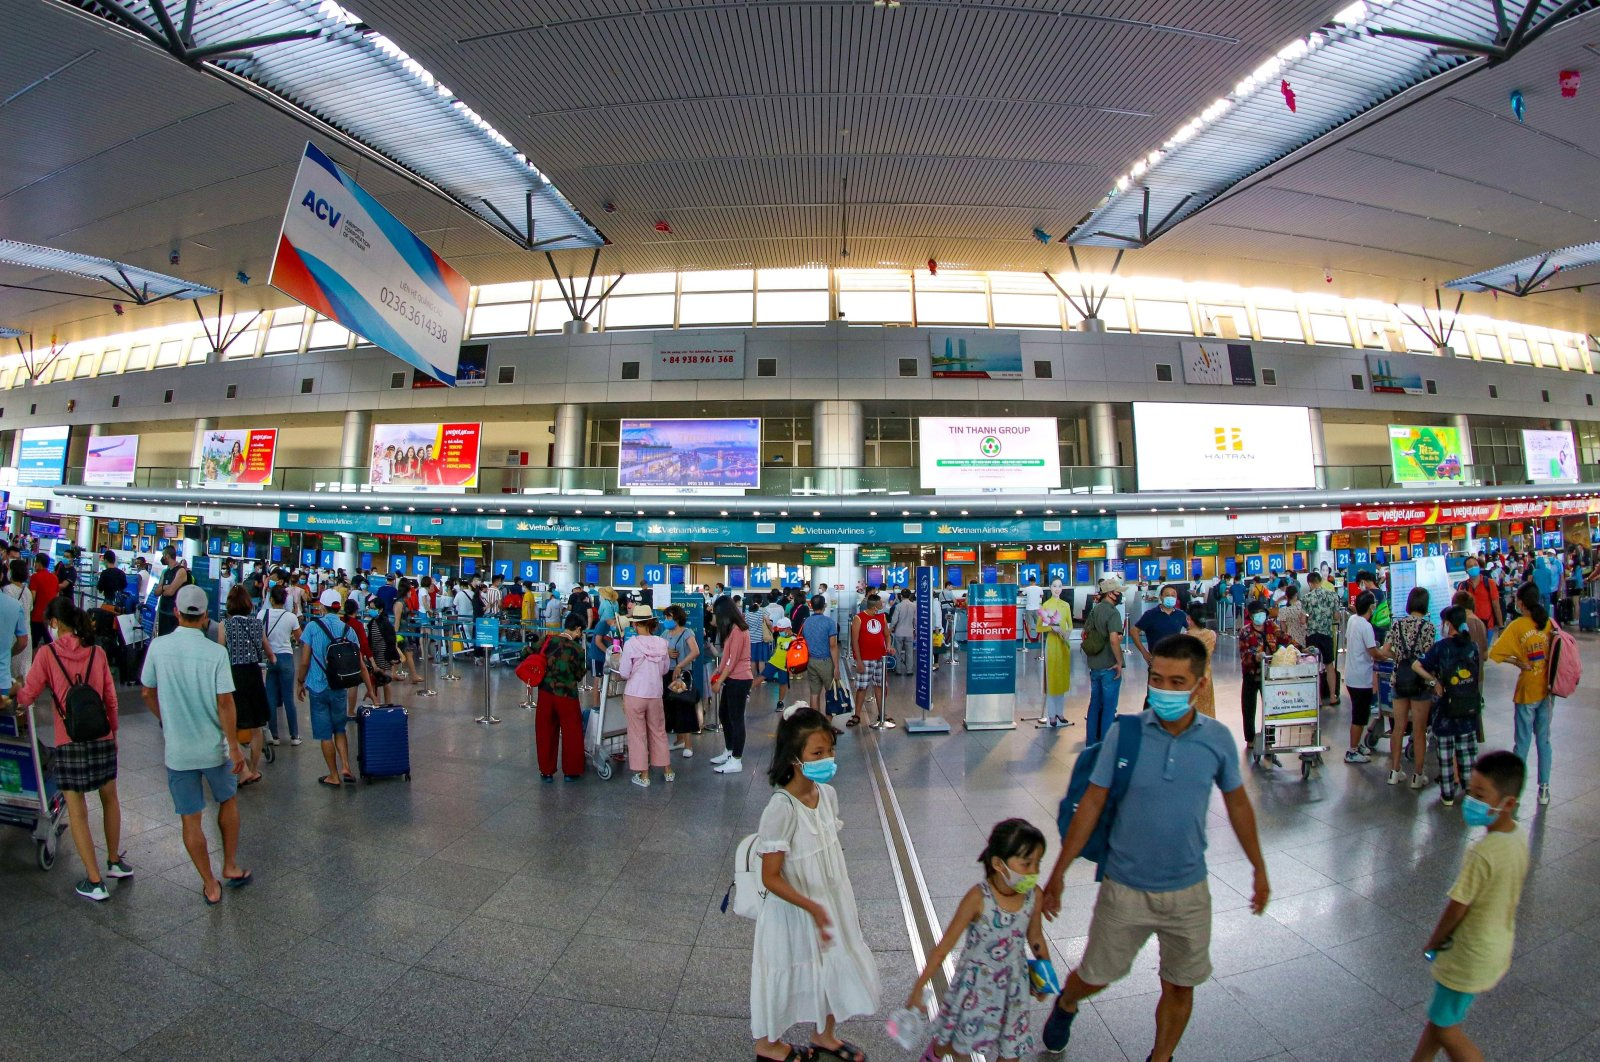 People wearing face masks at Da Nang International Airport as cases surge across the world, in Vietnam, July 26, 2020. (EPA Photo)